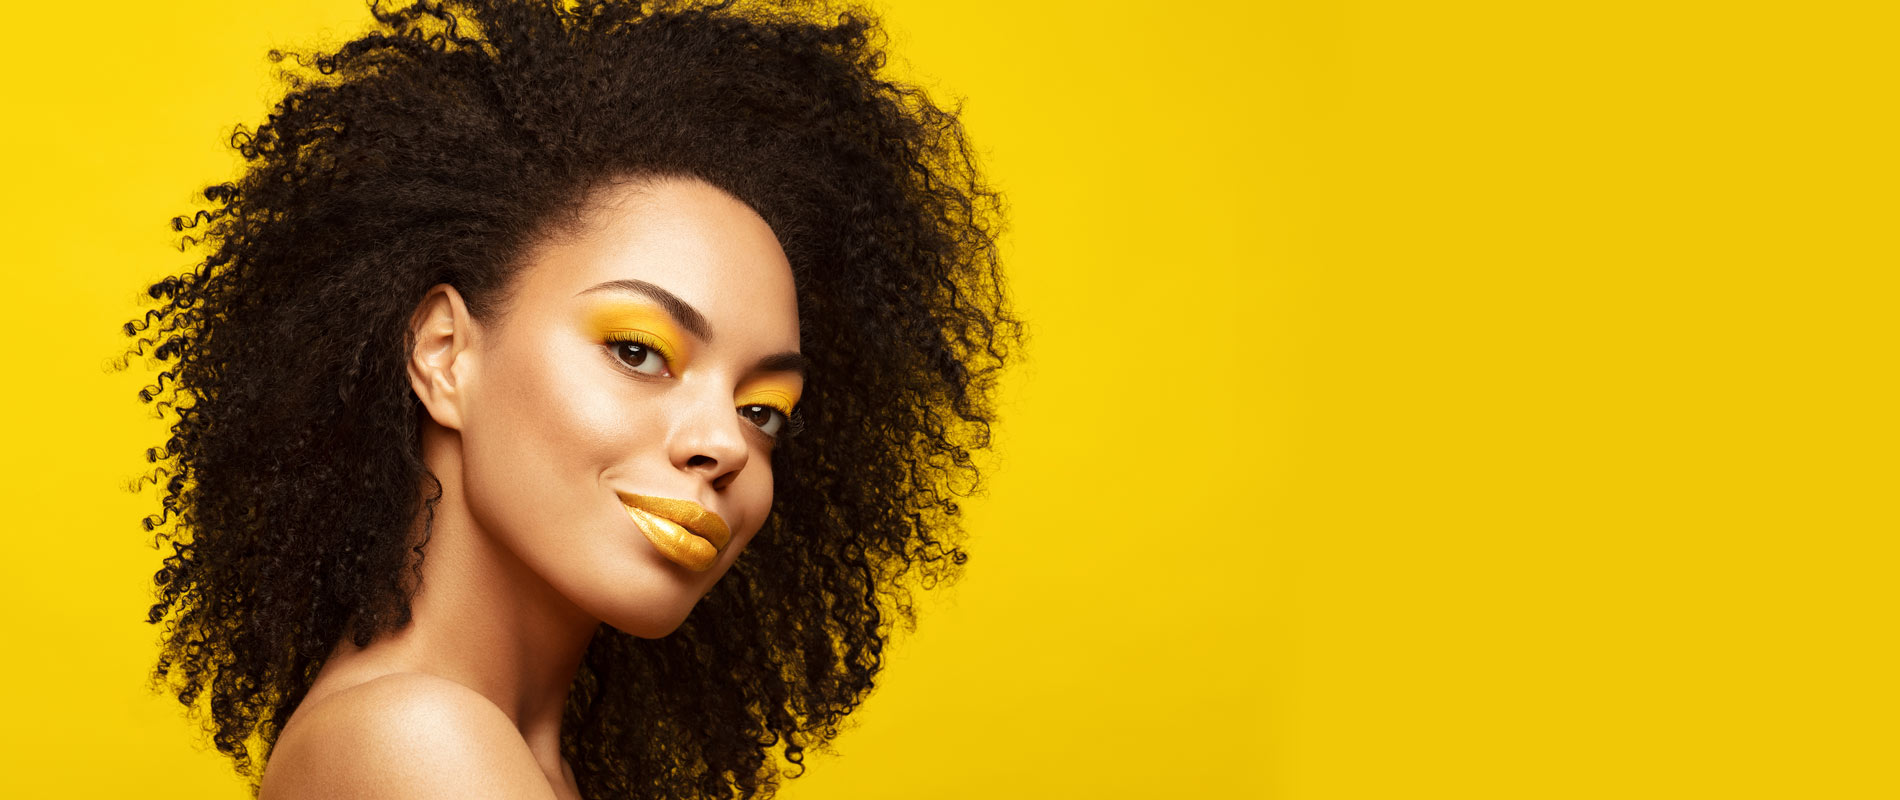 woman on a yellow background